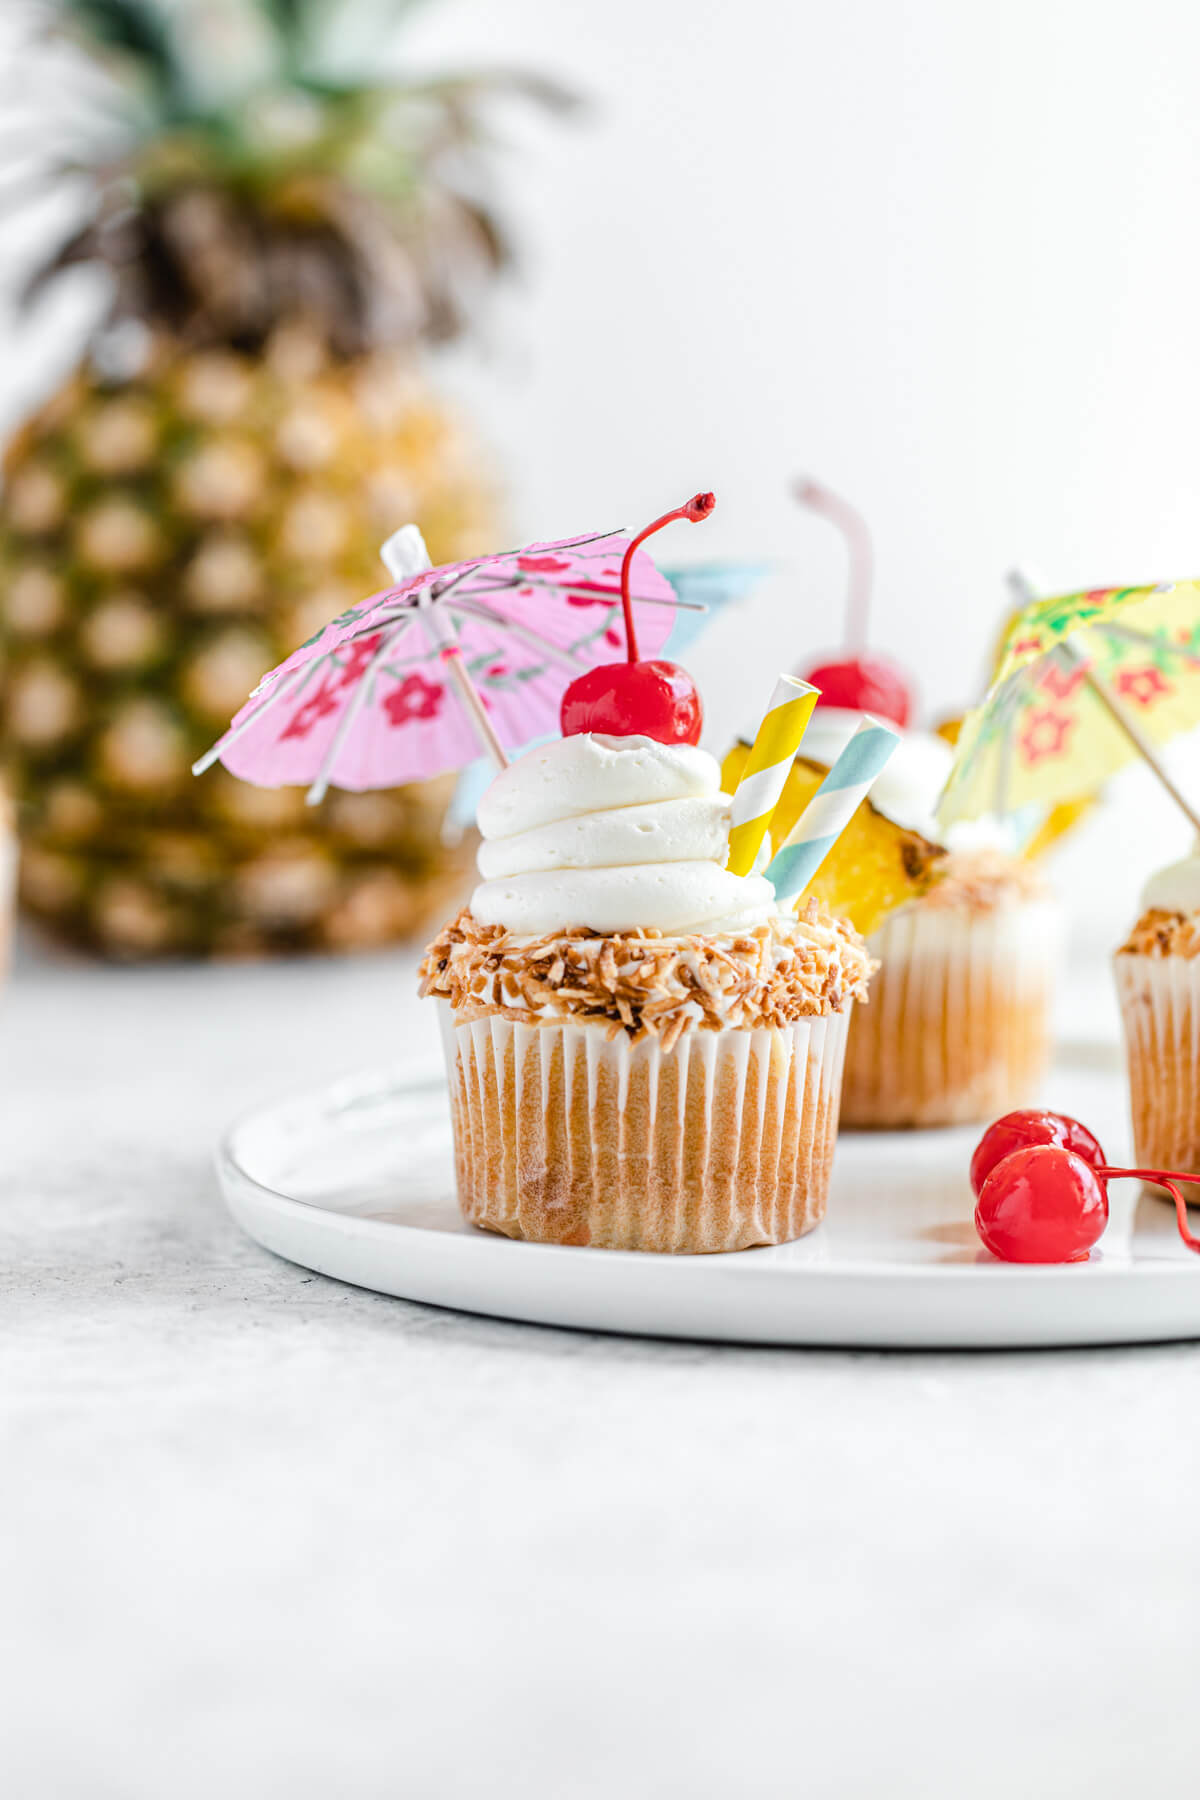 cupcake topped with umbrellas on a white plate with pineapple behind them